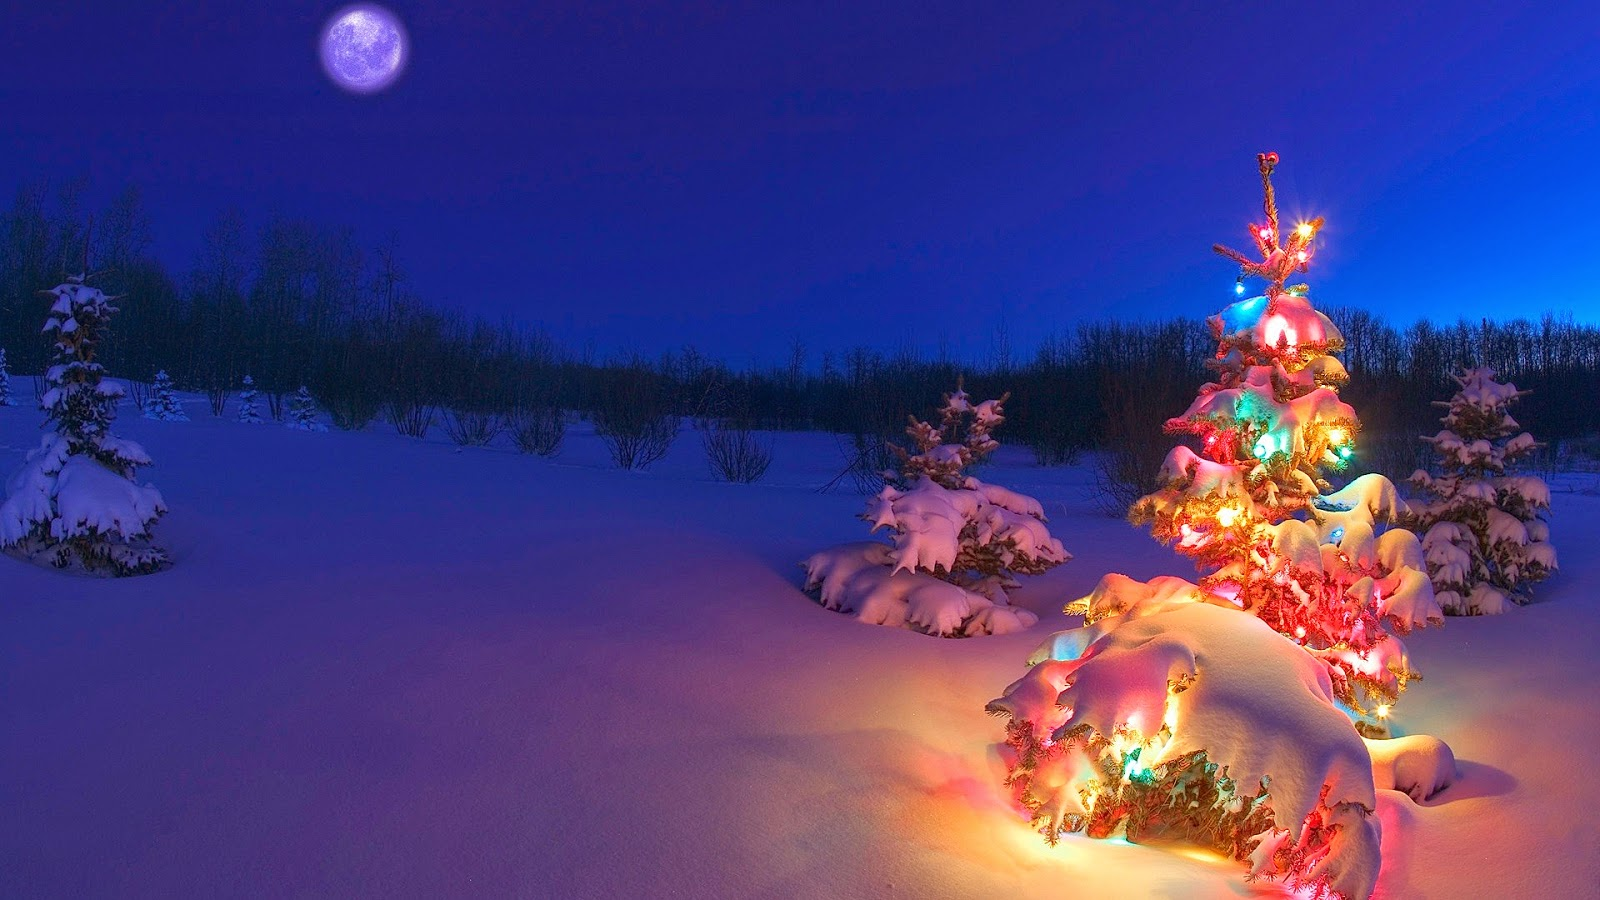 Christmas Wallpaper 2017 Christmas Wallpaper Dual Screen